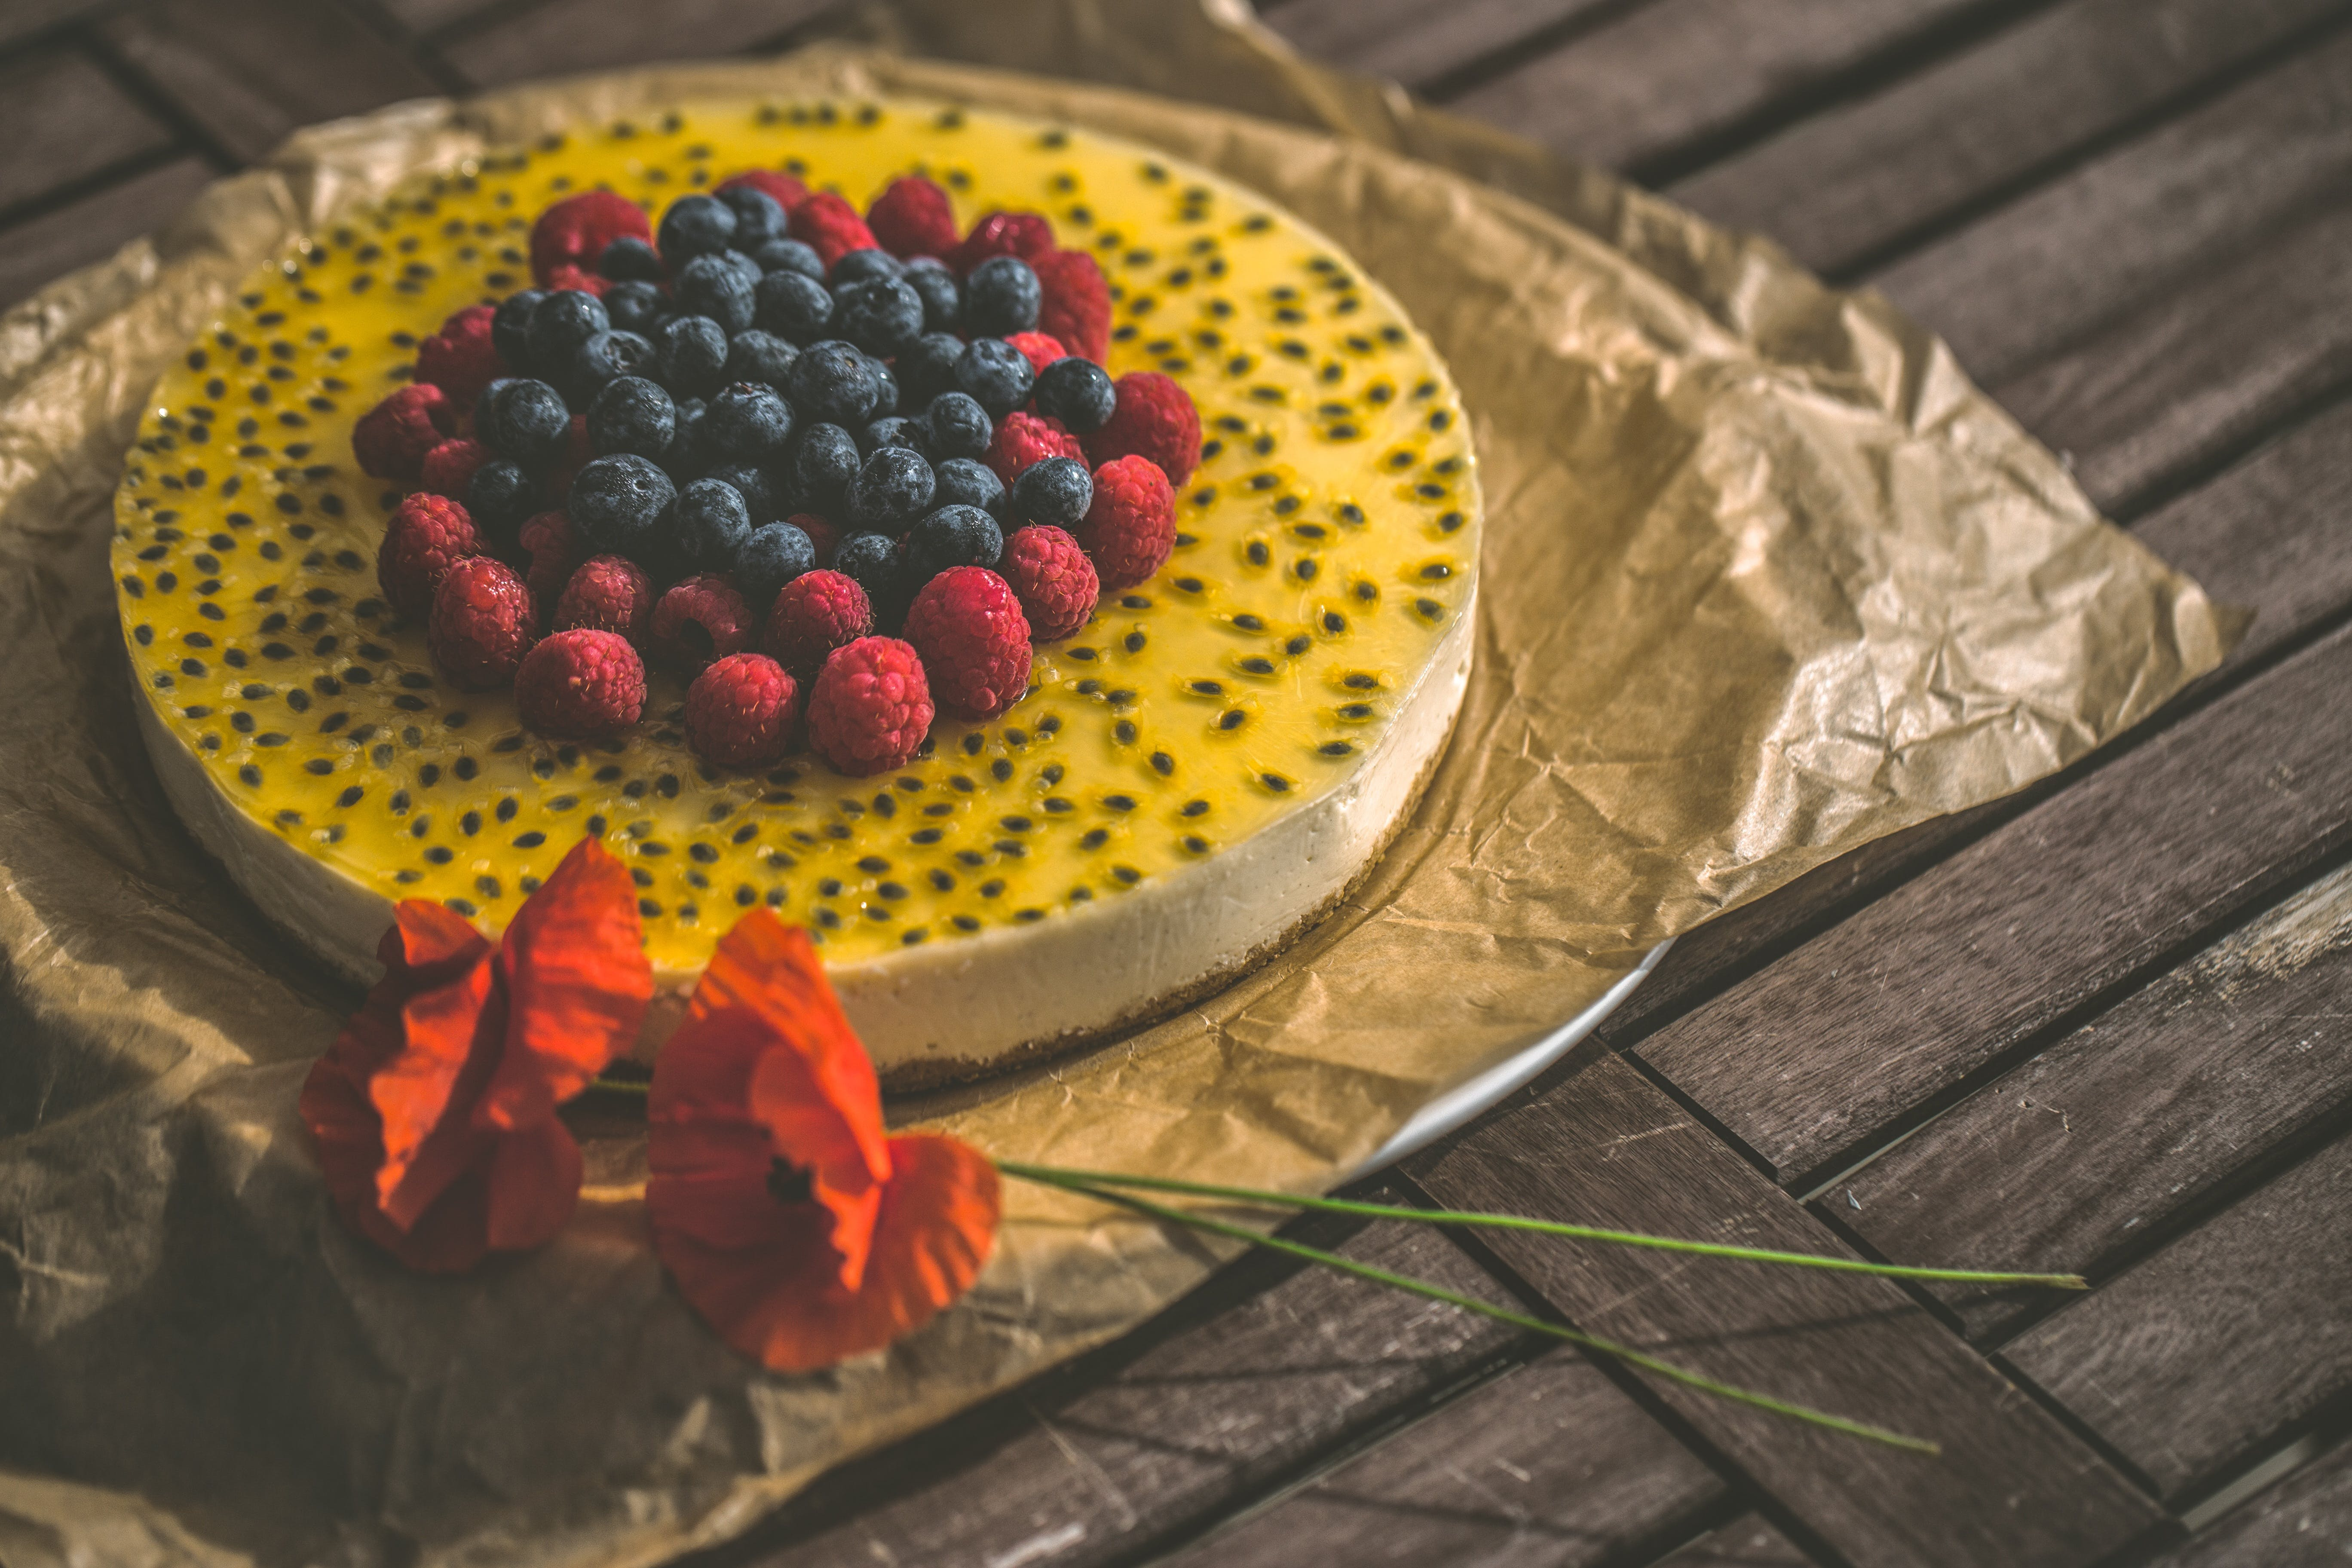 Red and Blueberry Cake on Brown Wooden Surface